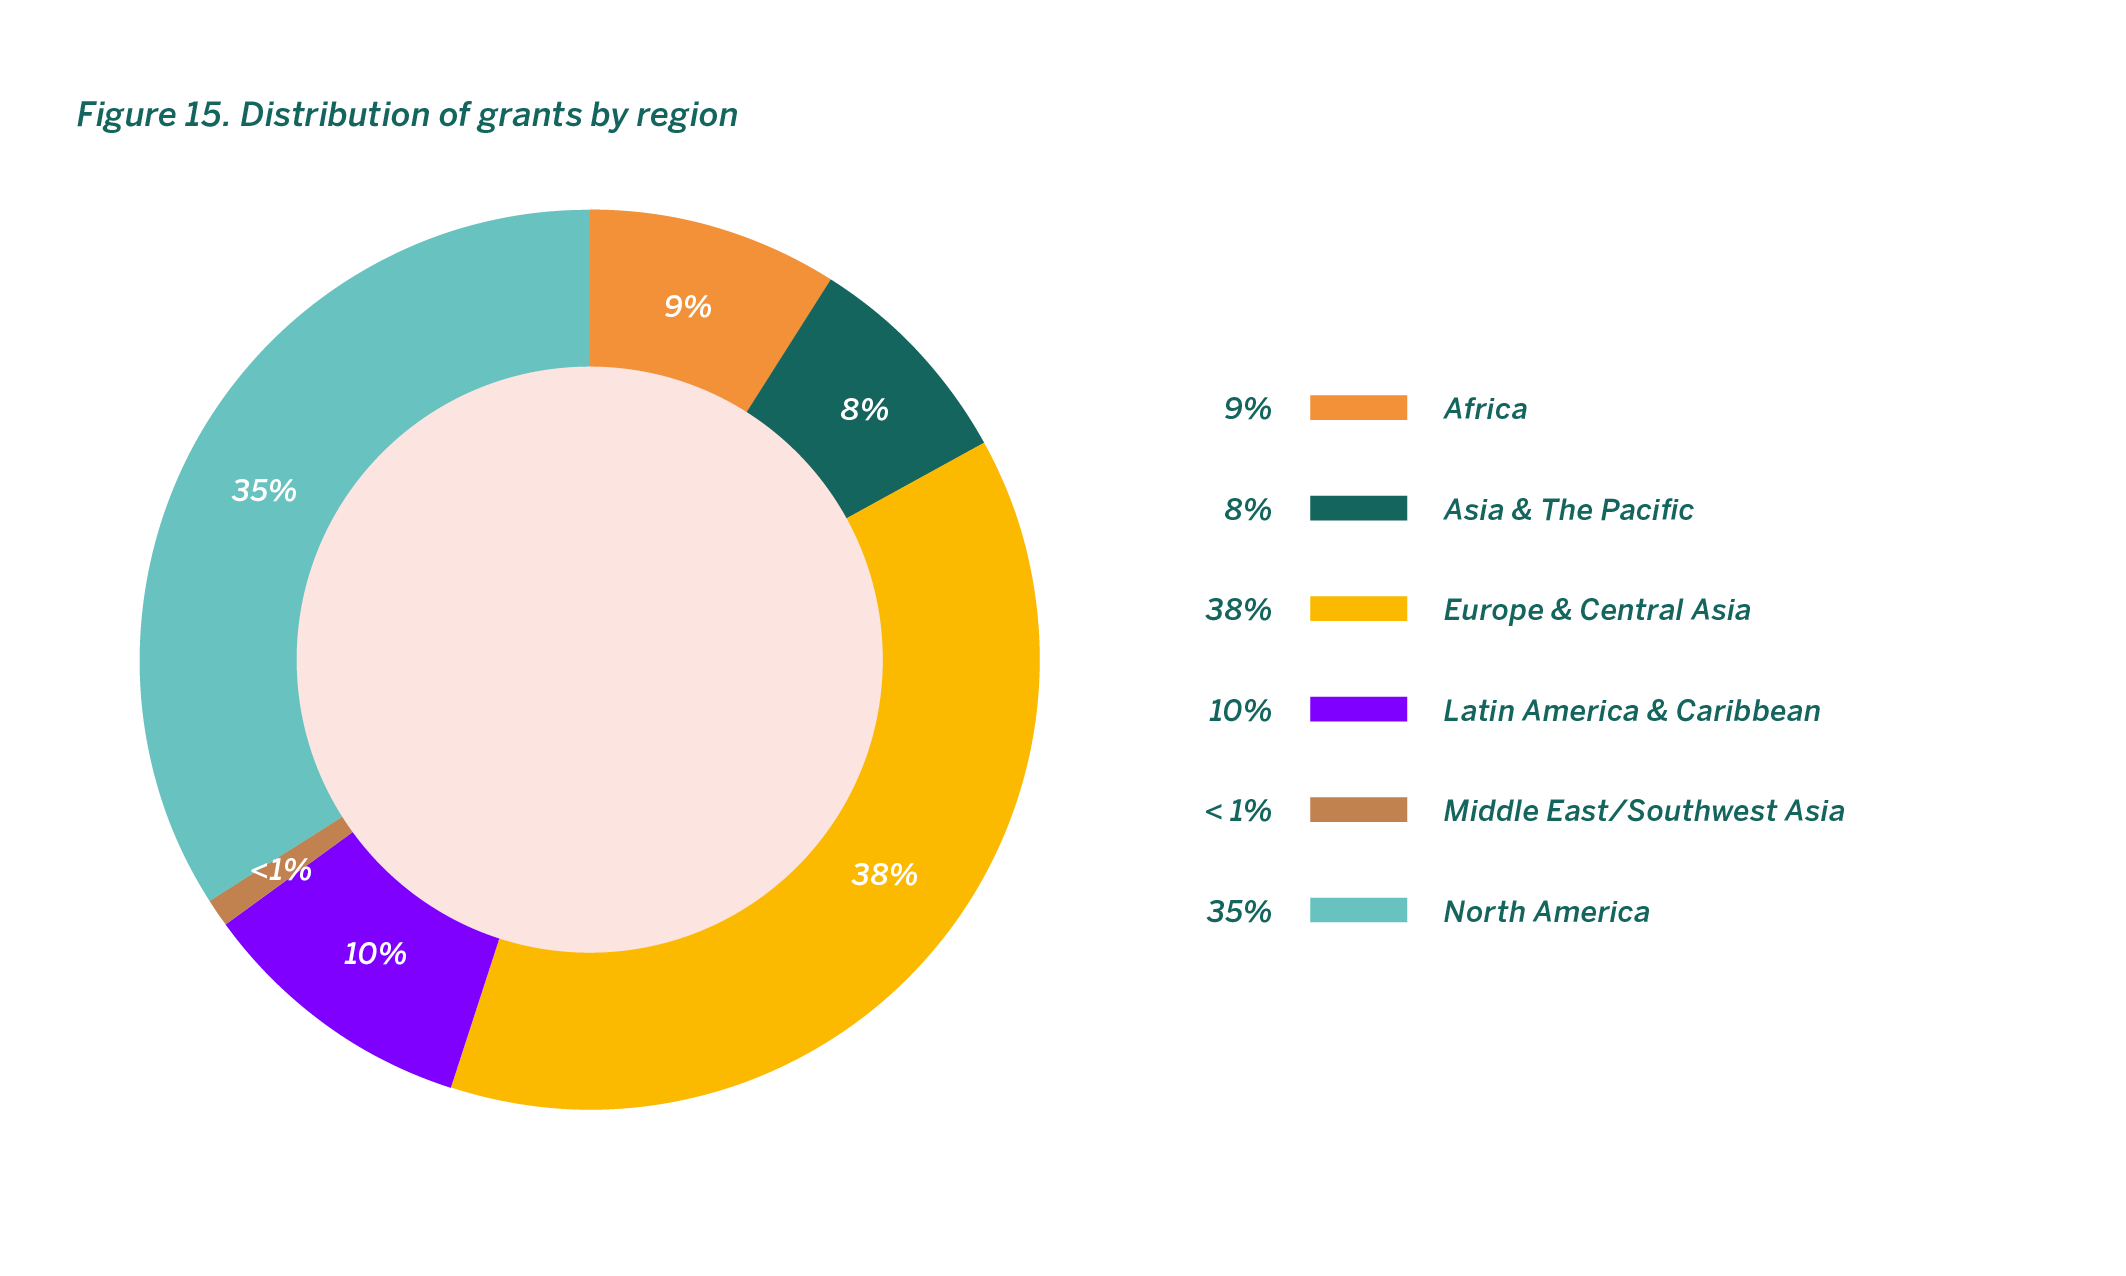 Distribution of grants by region